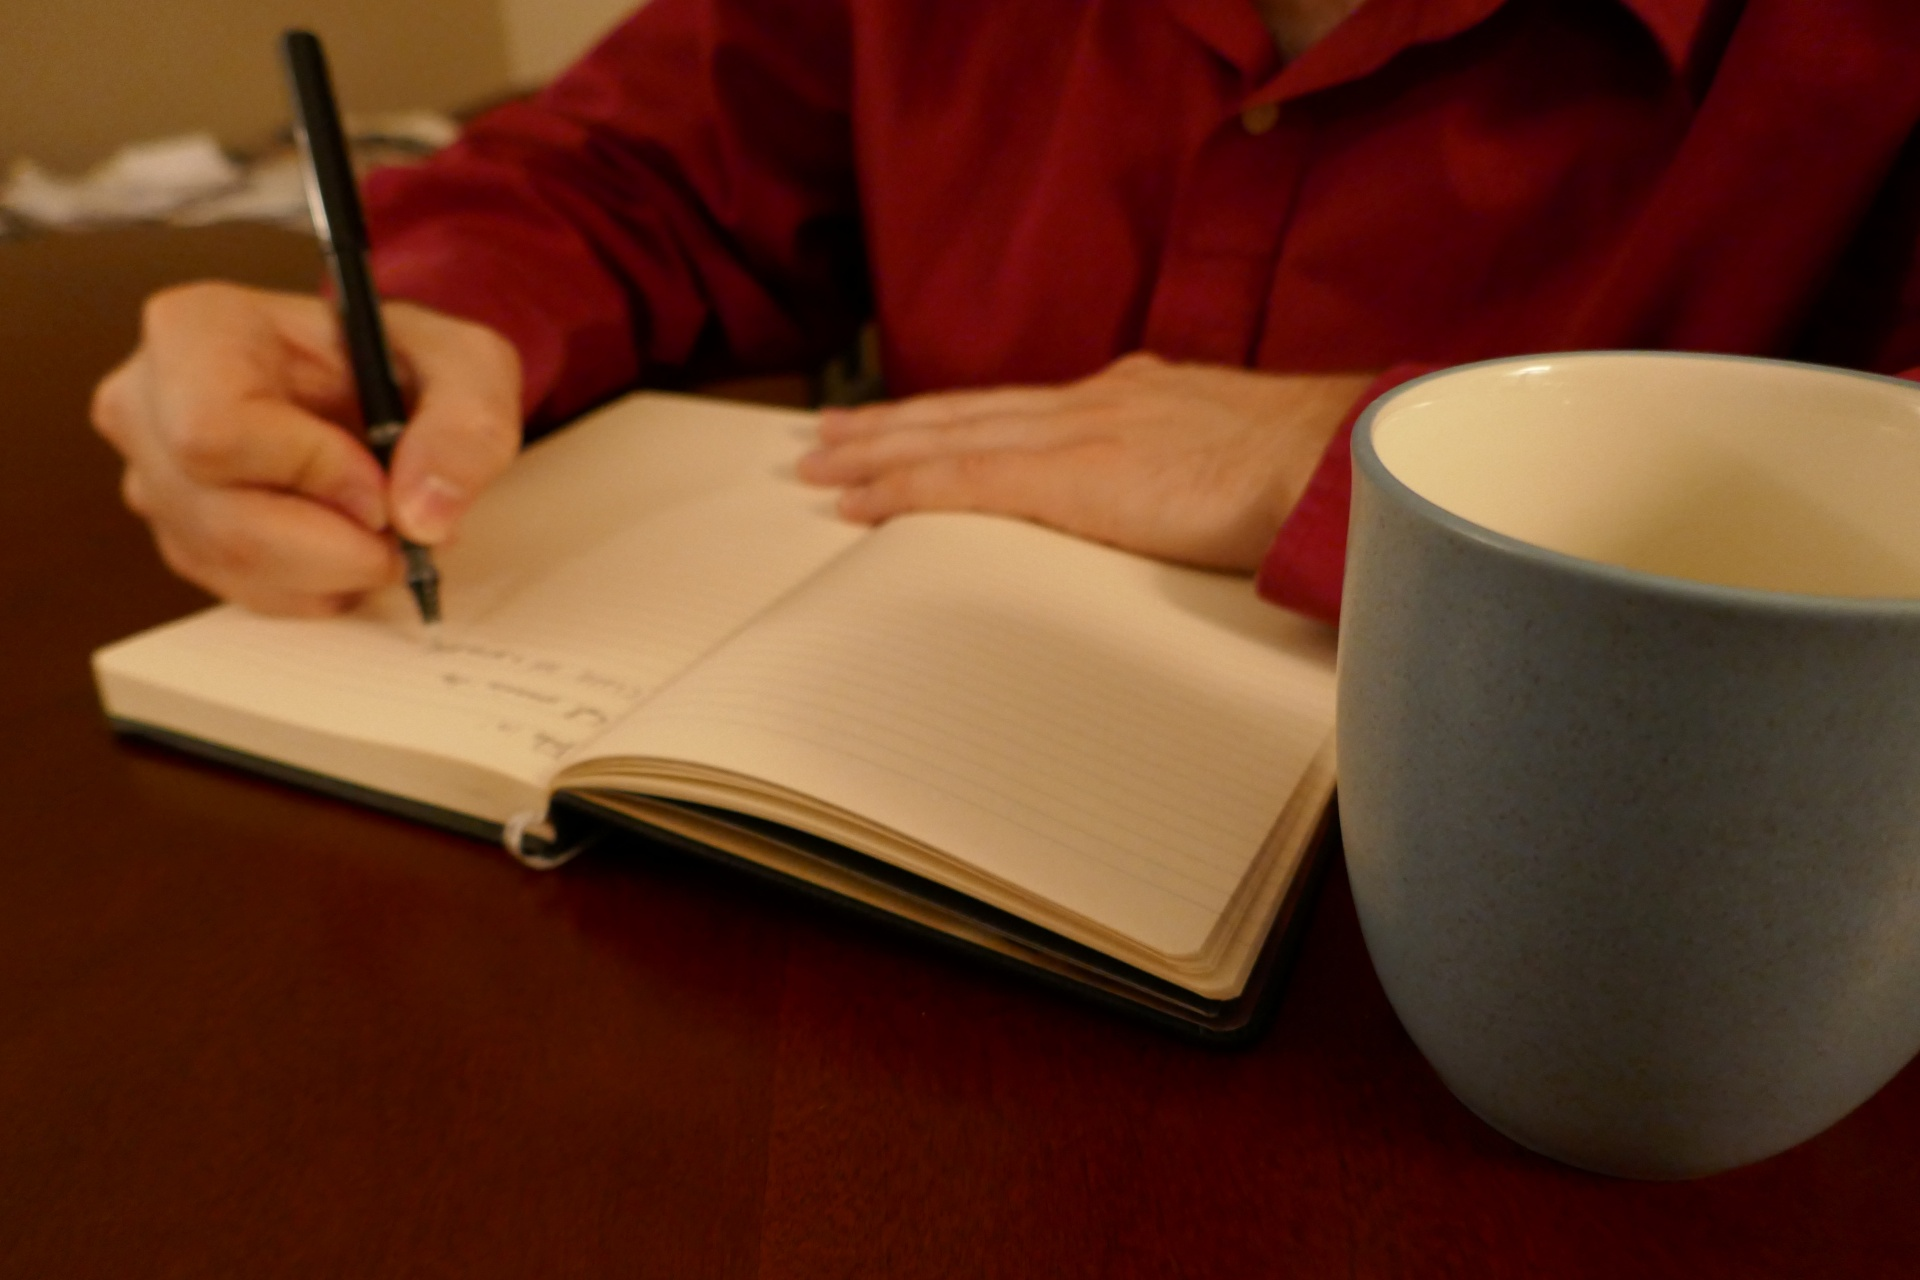 blurred shot of a person in a red shirt writing in a journal with a blue coffee mug in focus, journal writing, diary, coping strategies